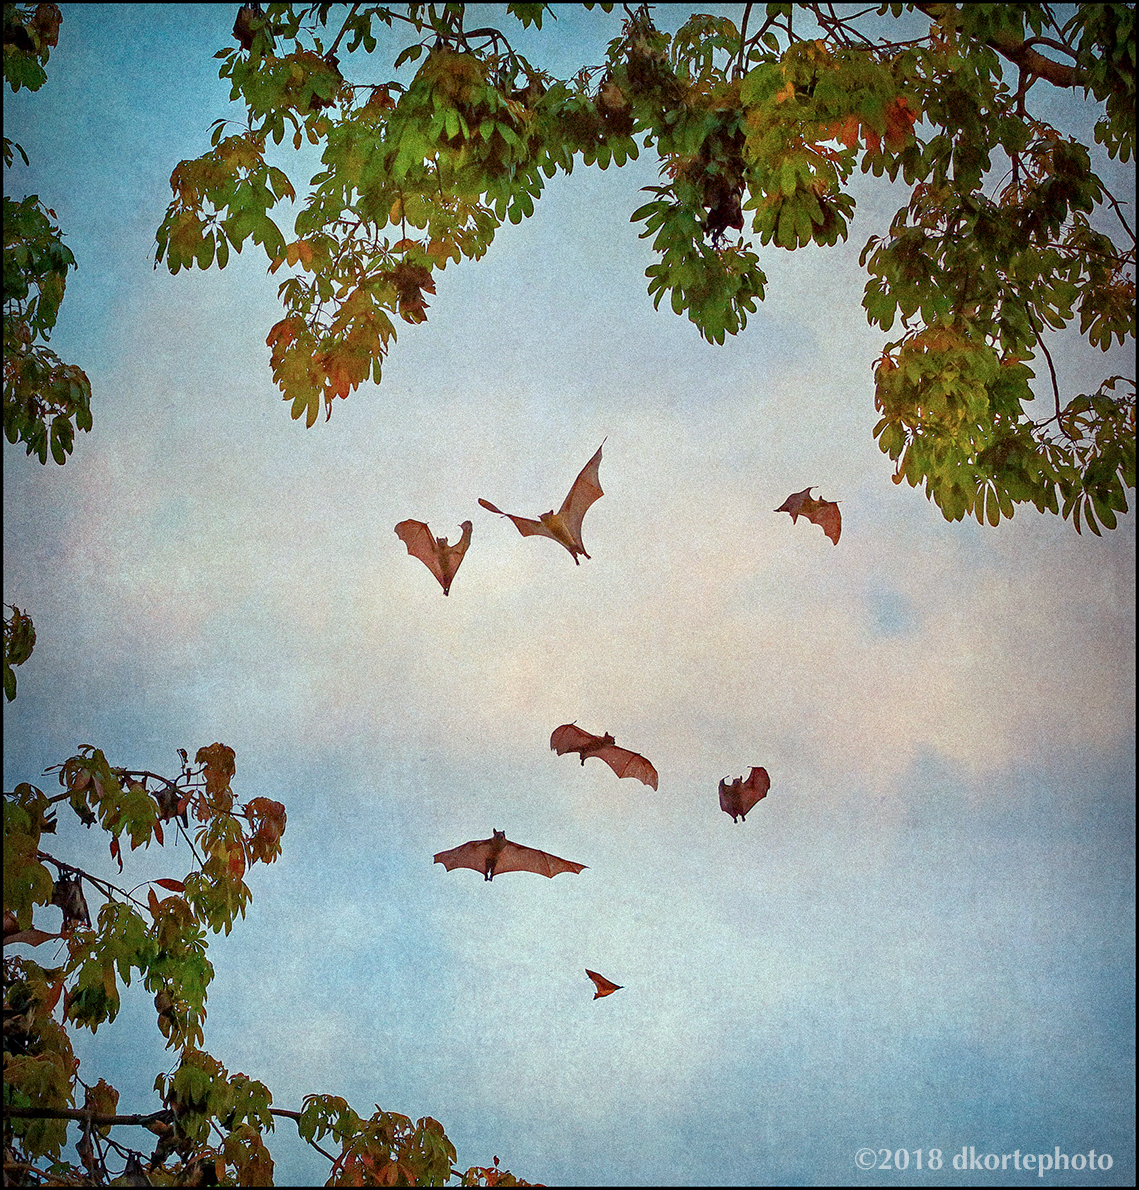 A flutter of fruit bats hover before entering a tree canopy.